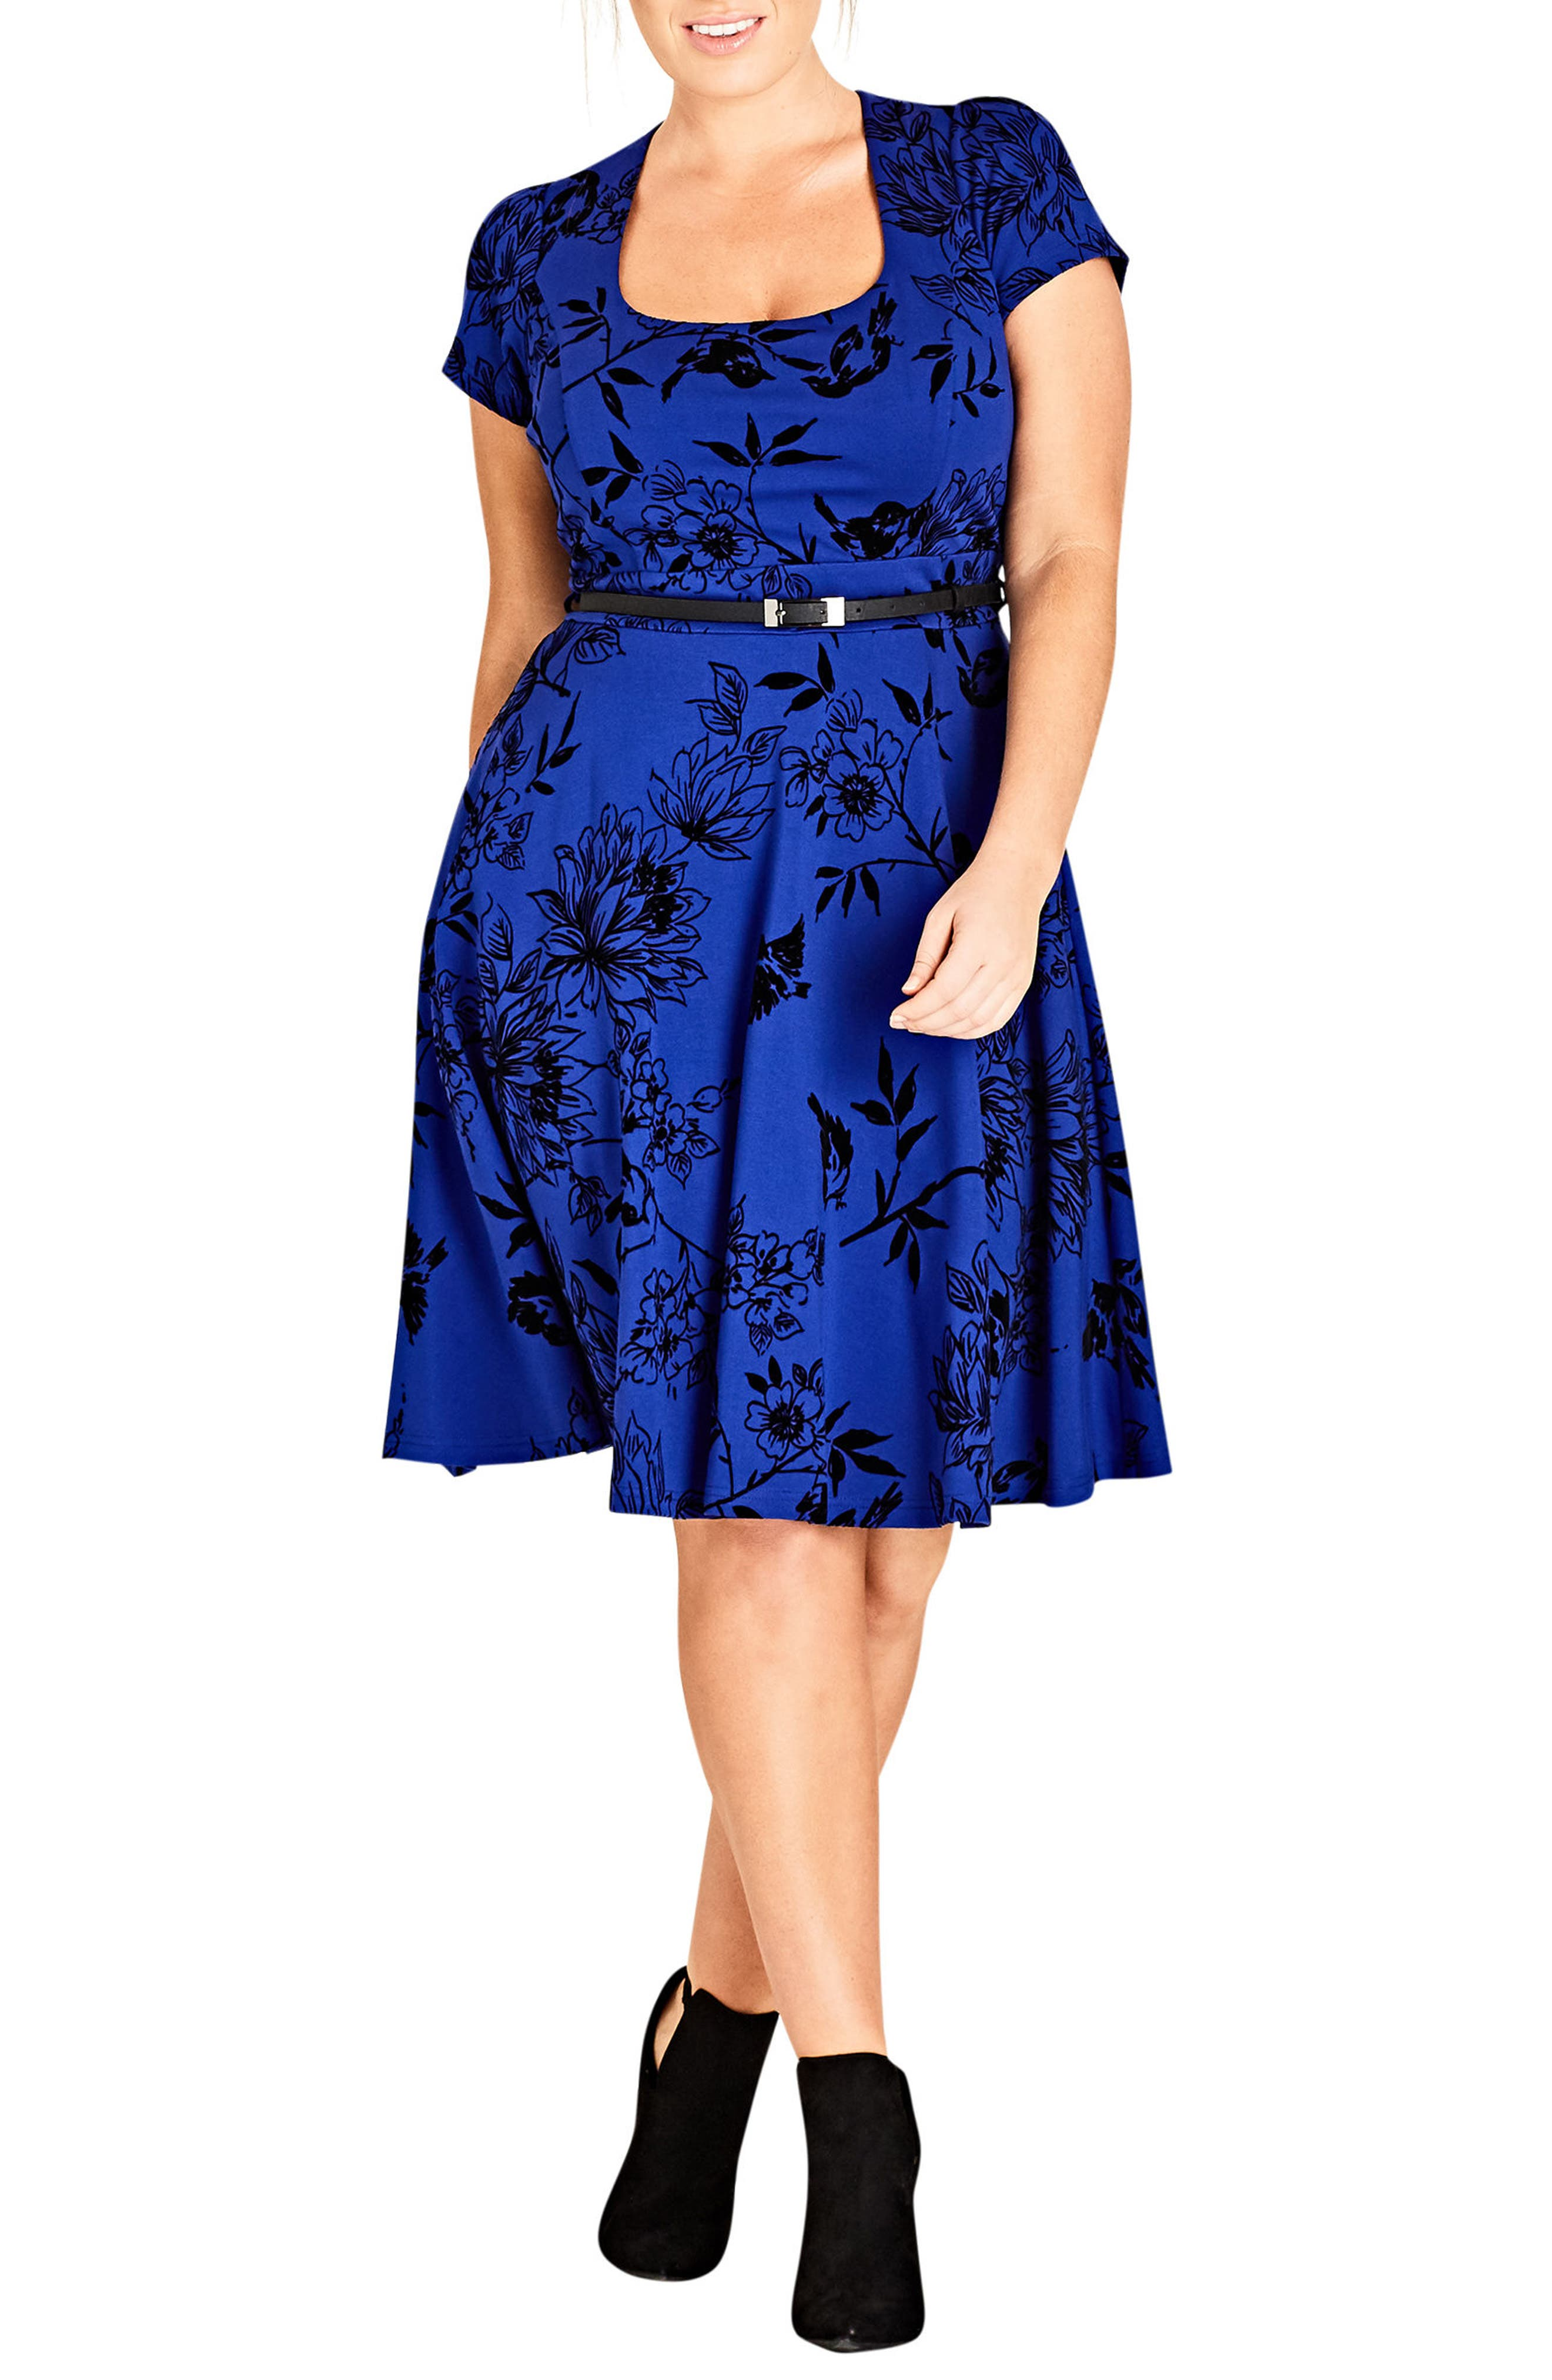 Birdy Flock Fit & Flare Dress,                             Main thumbnail 1, color,                             Pool